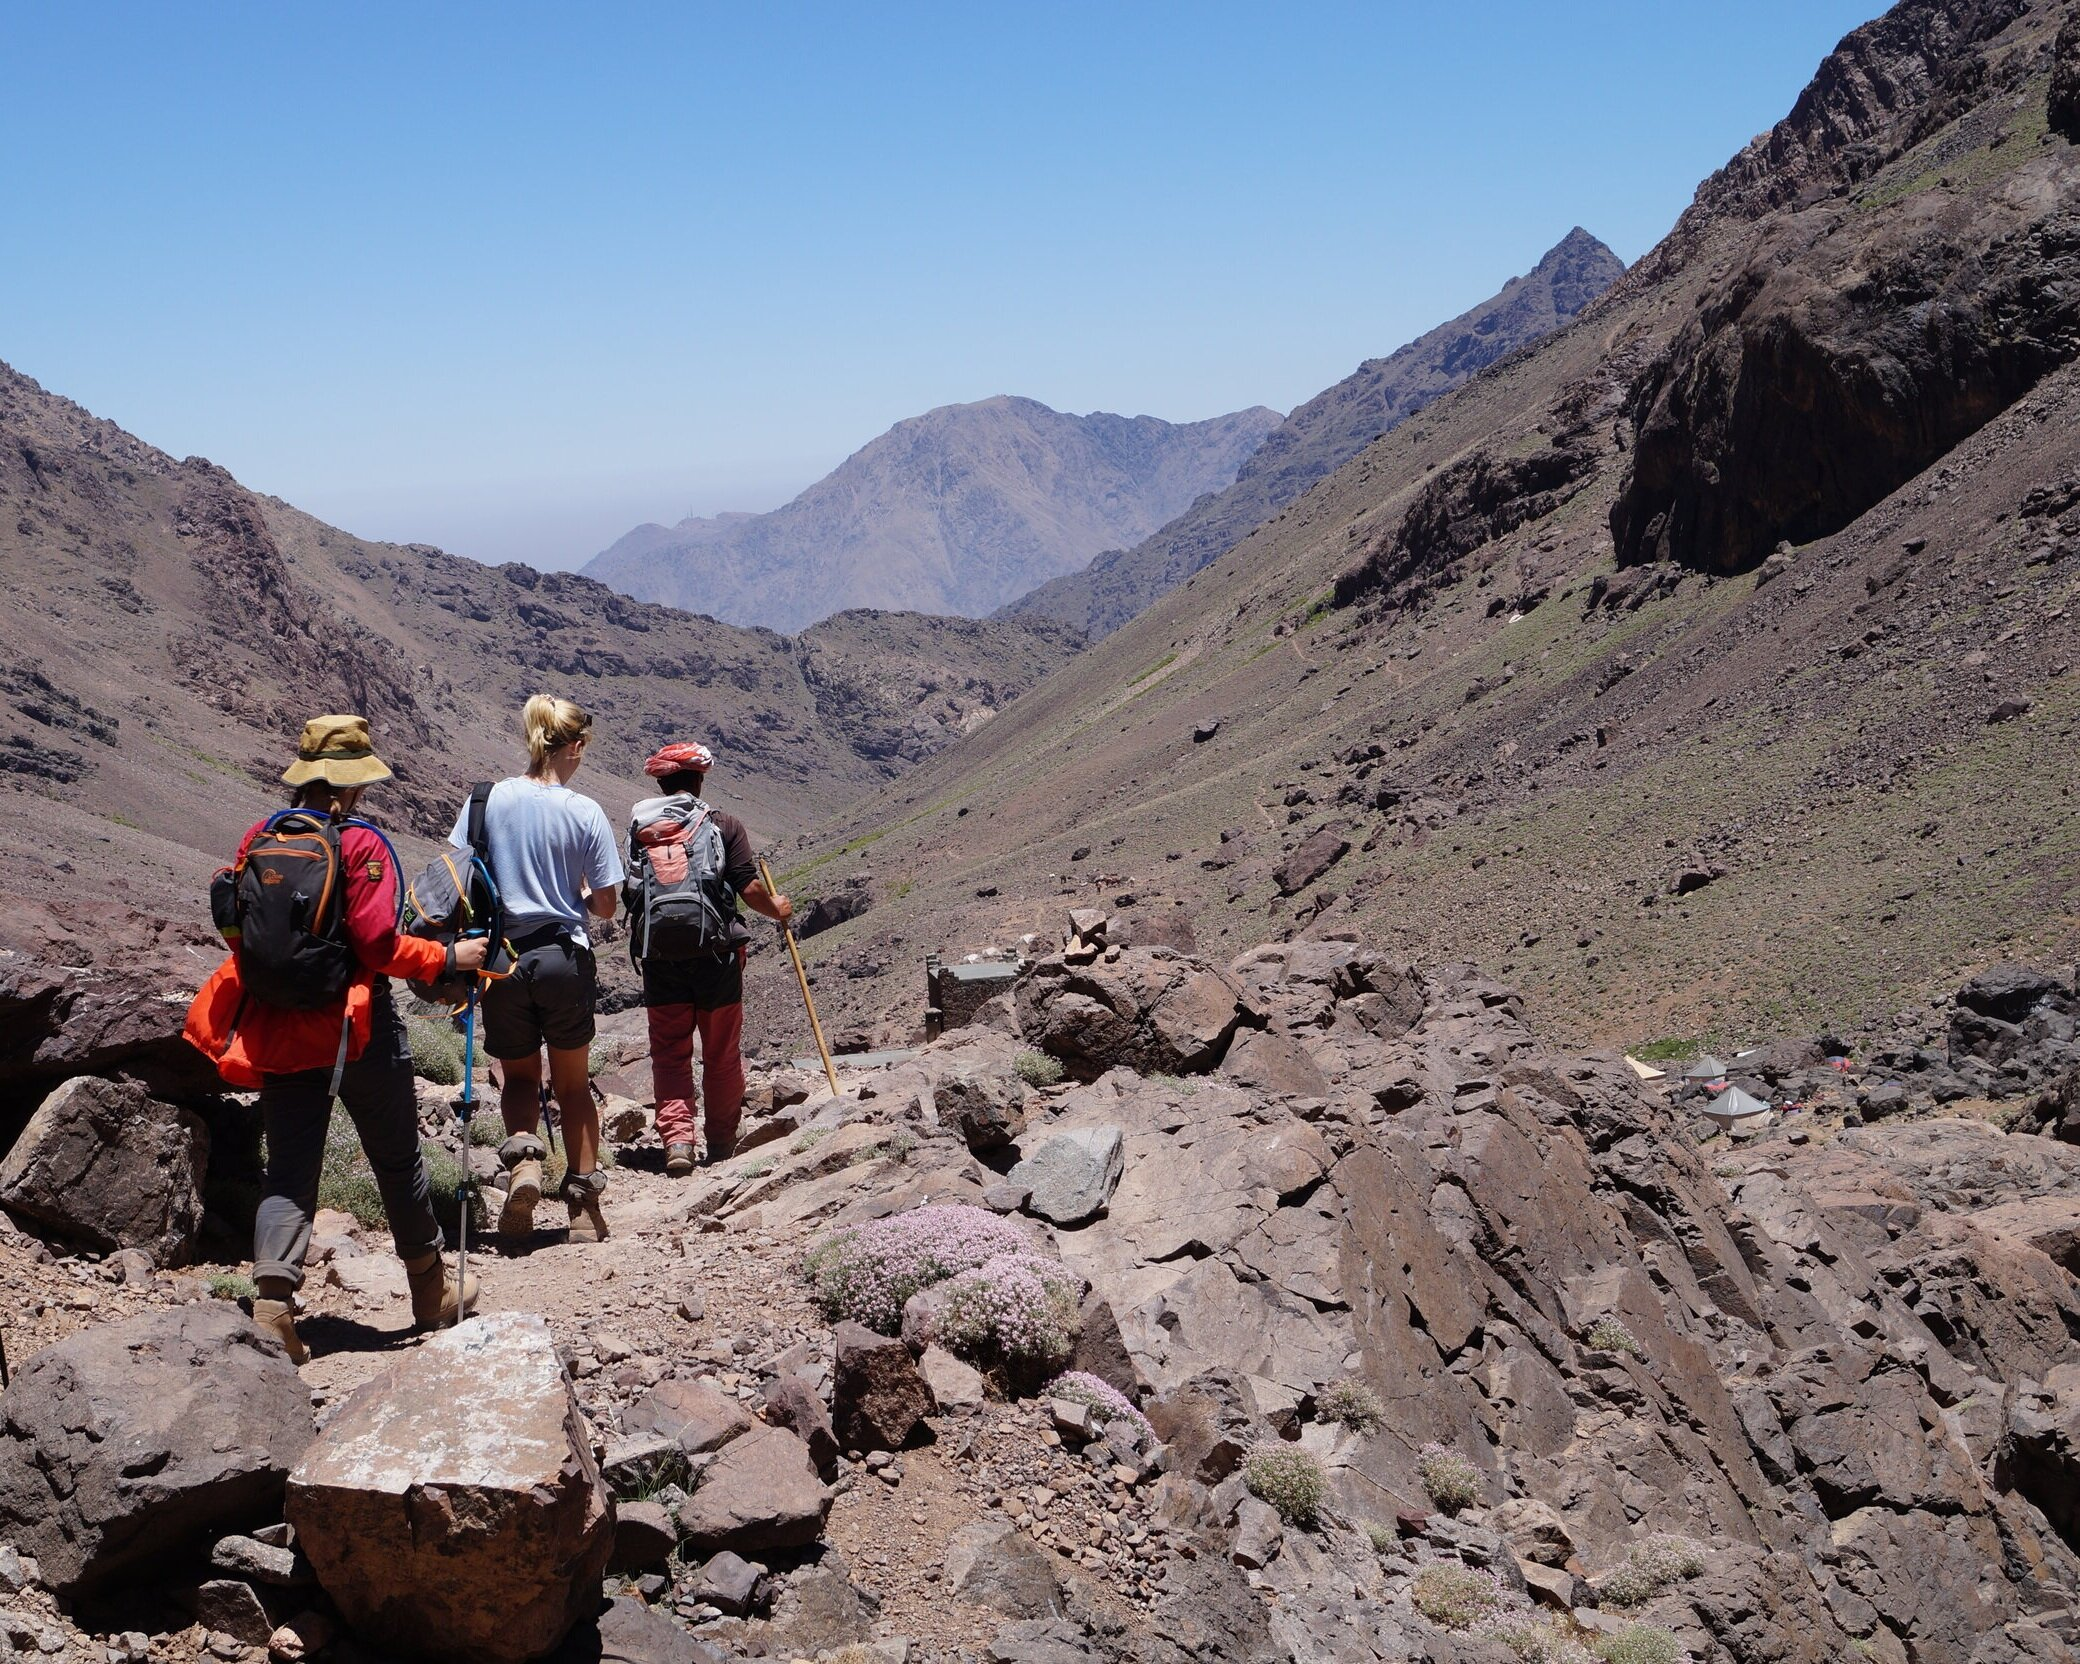 HIGH ATLAS MOUNTAINS TREK - Discover the beauty of Morocco's mountains, a trekkers paradise, on this spectacular hike.8 DAYS | CHALLENGING | FIND OUT MORE